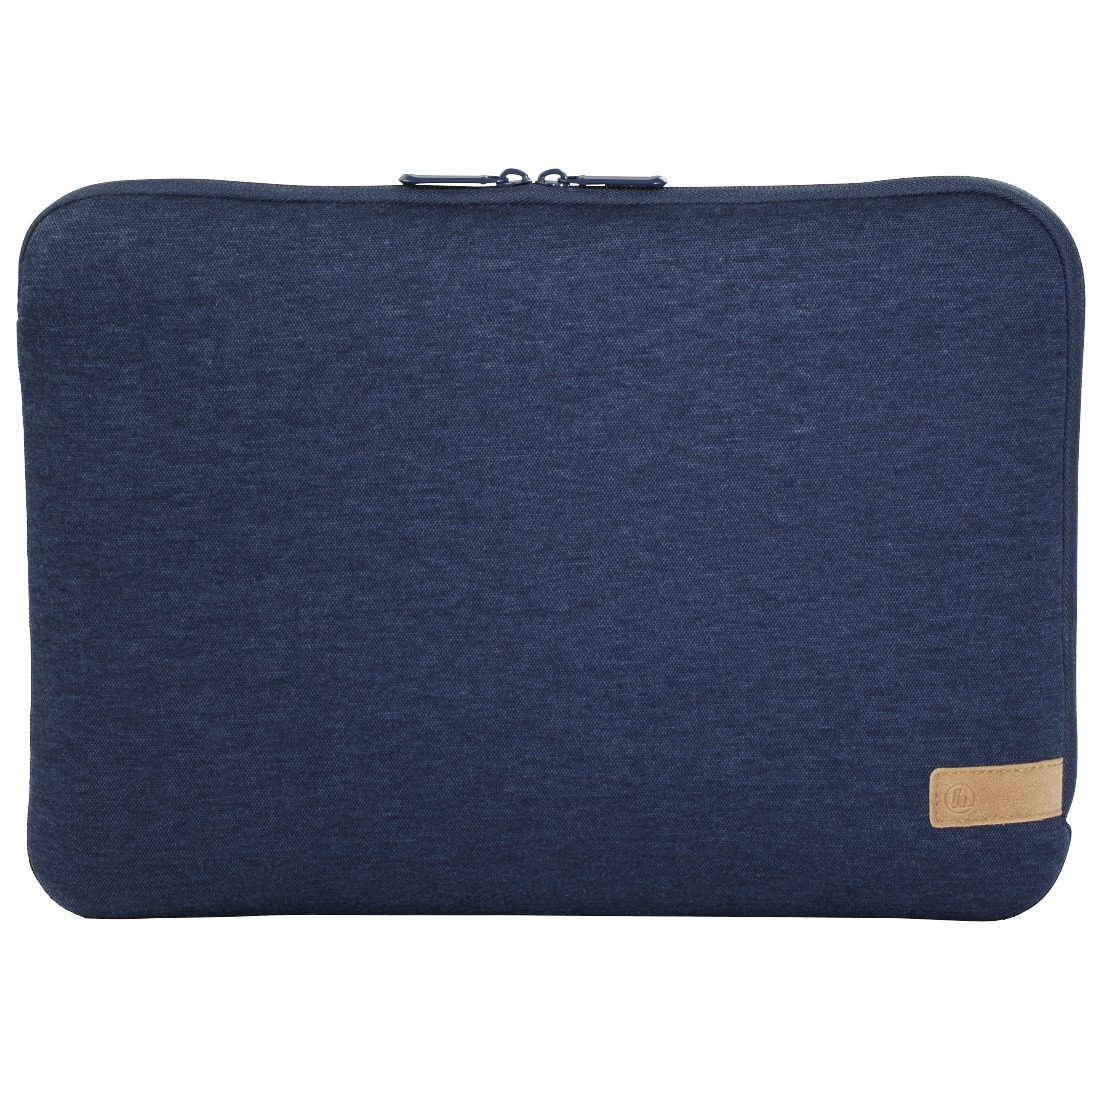 Hama Laptophoes Jersey 14 inch laptop sleeve